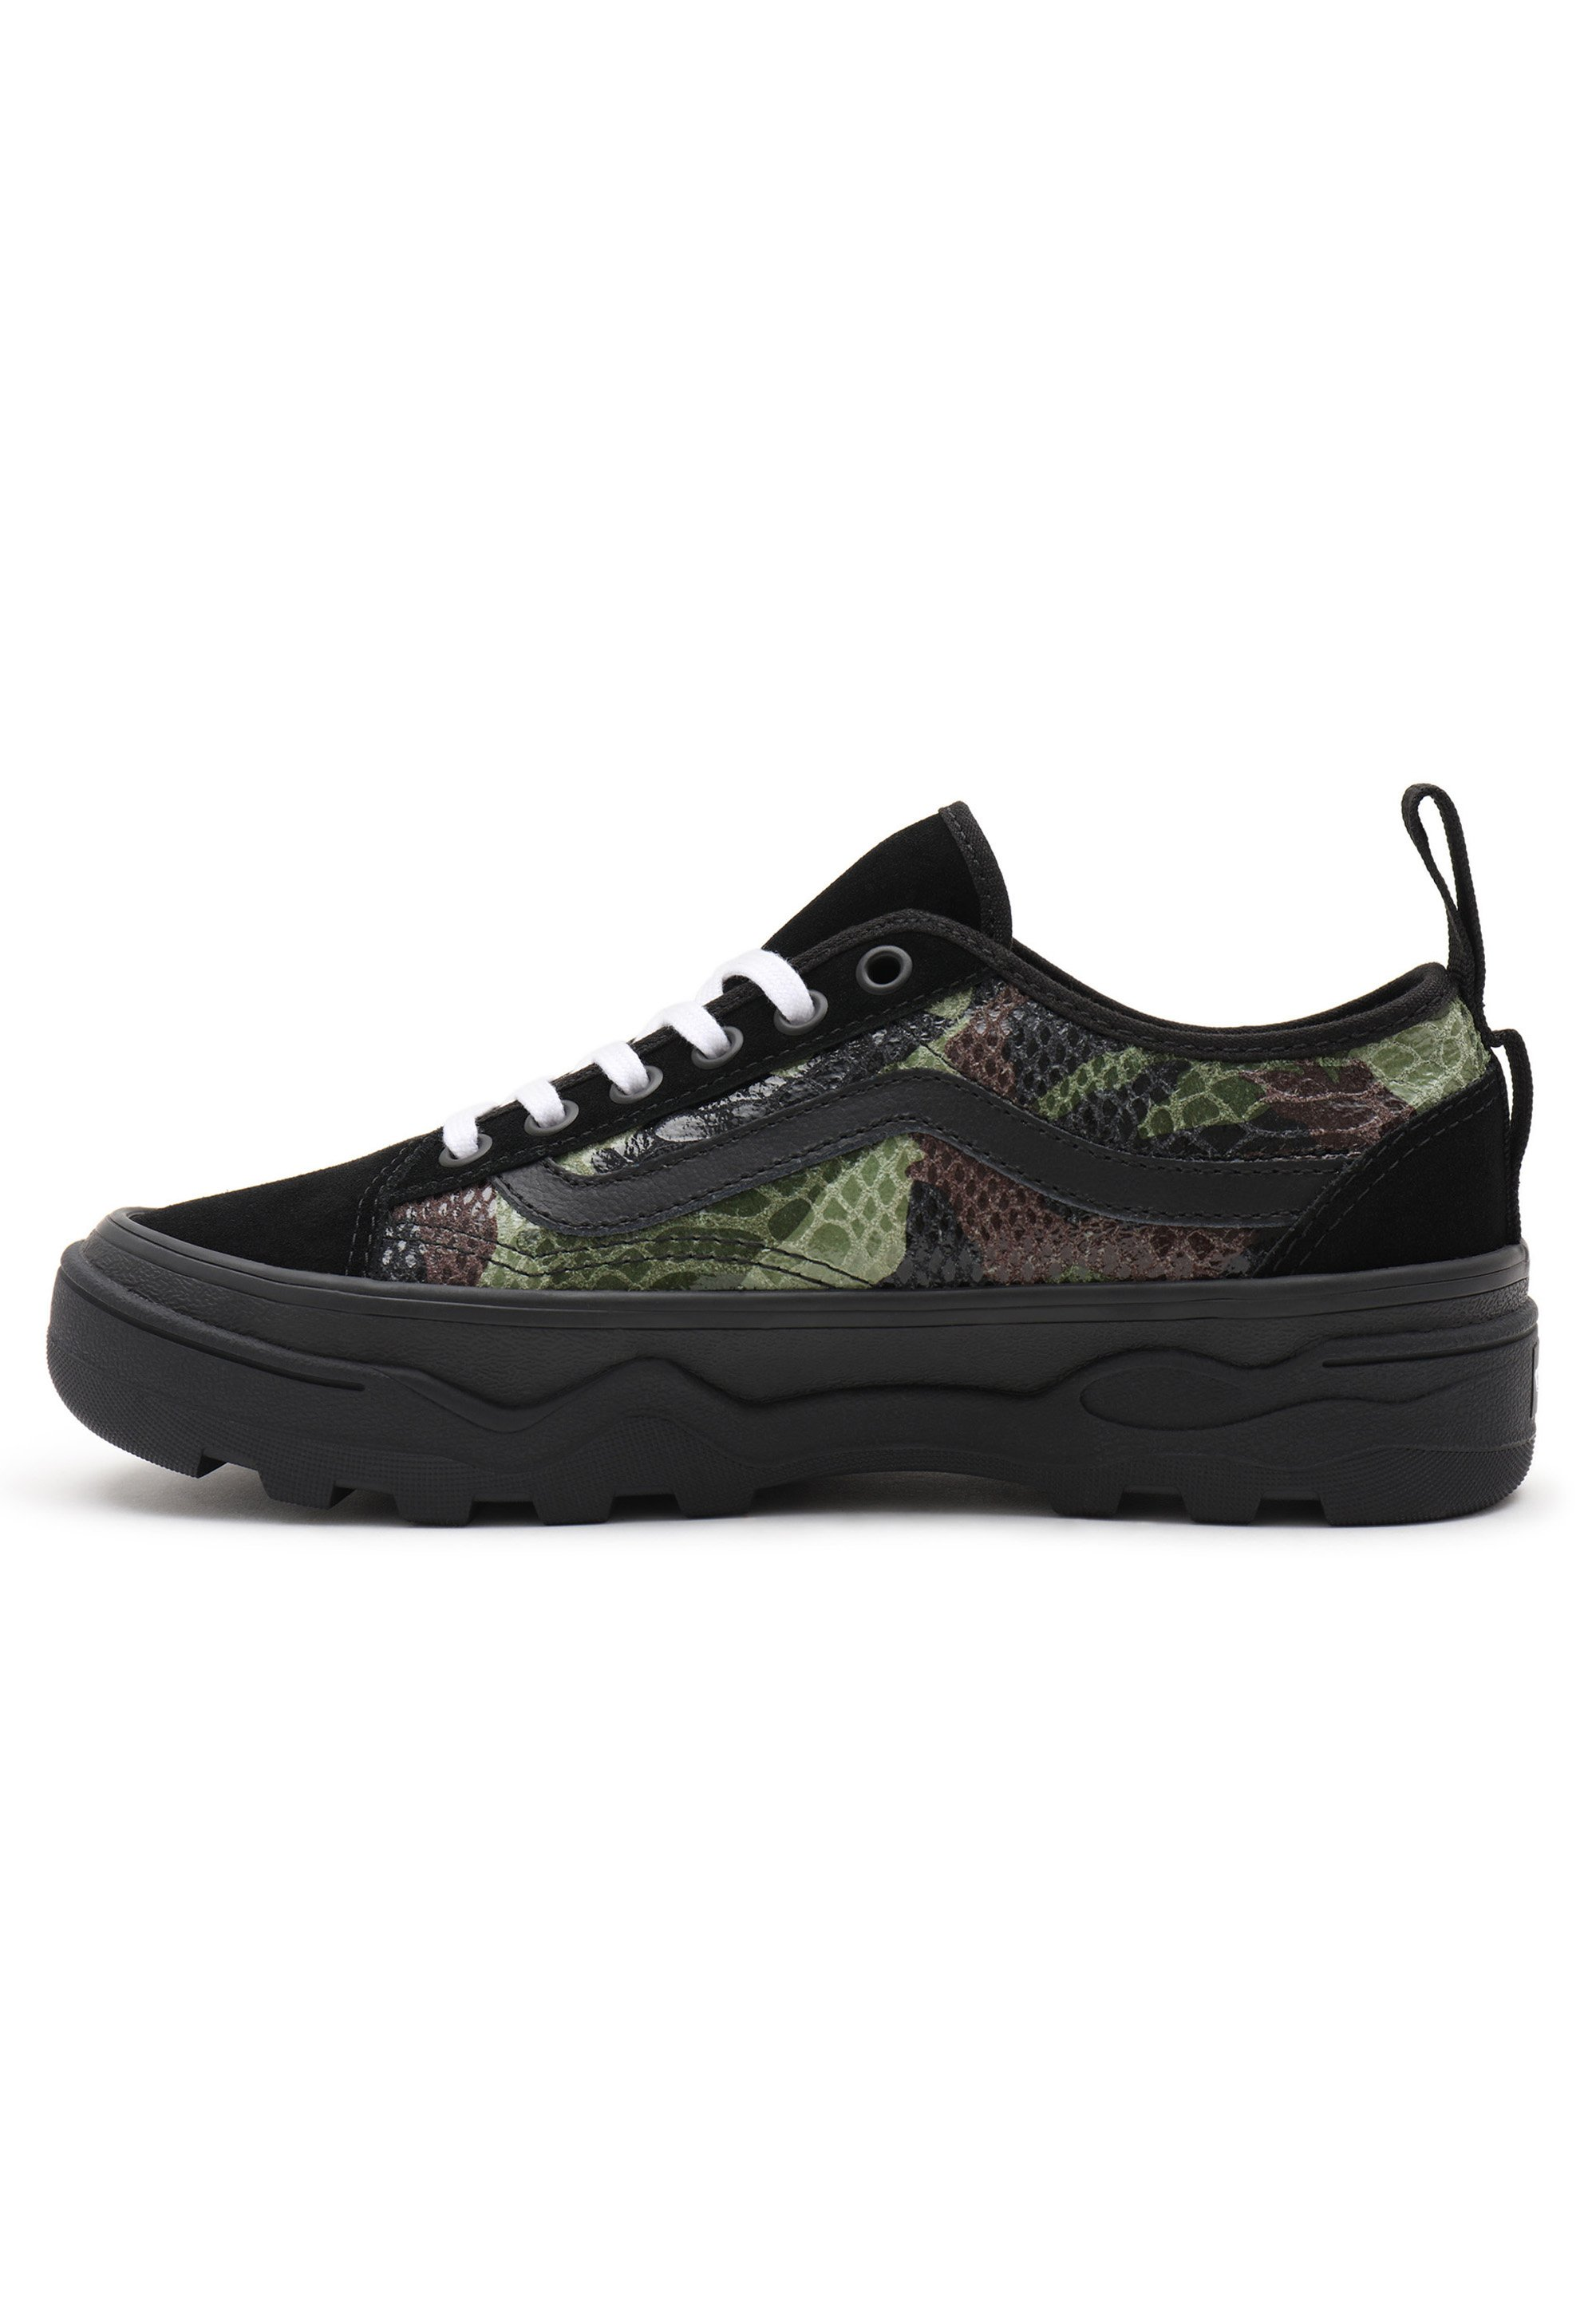 Homme UA SENTRY OLD SKOOL WC - Chaussures à lacets